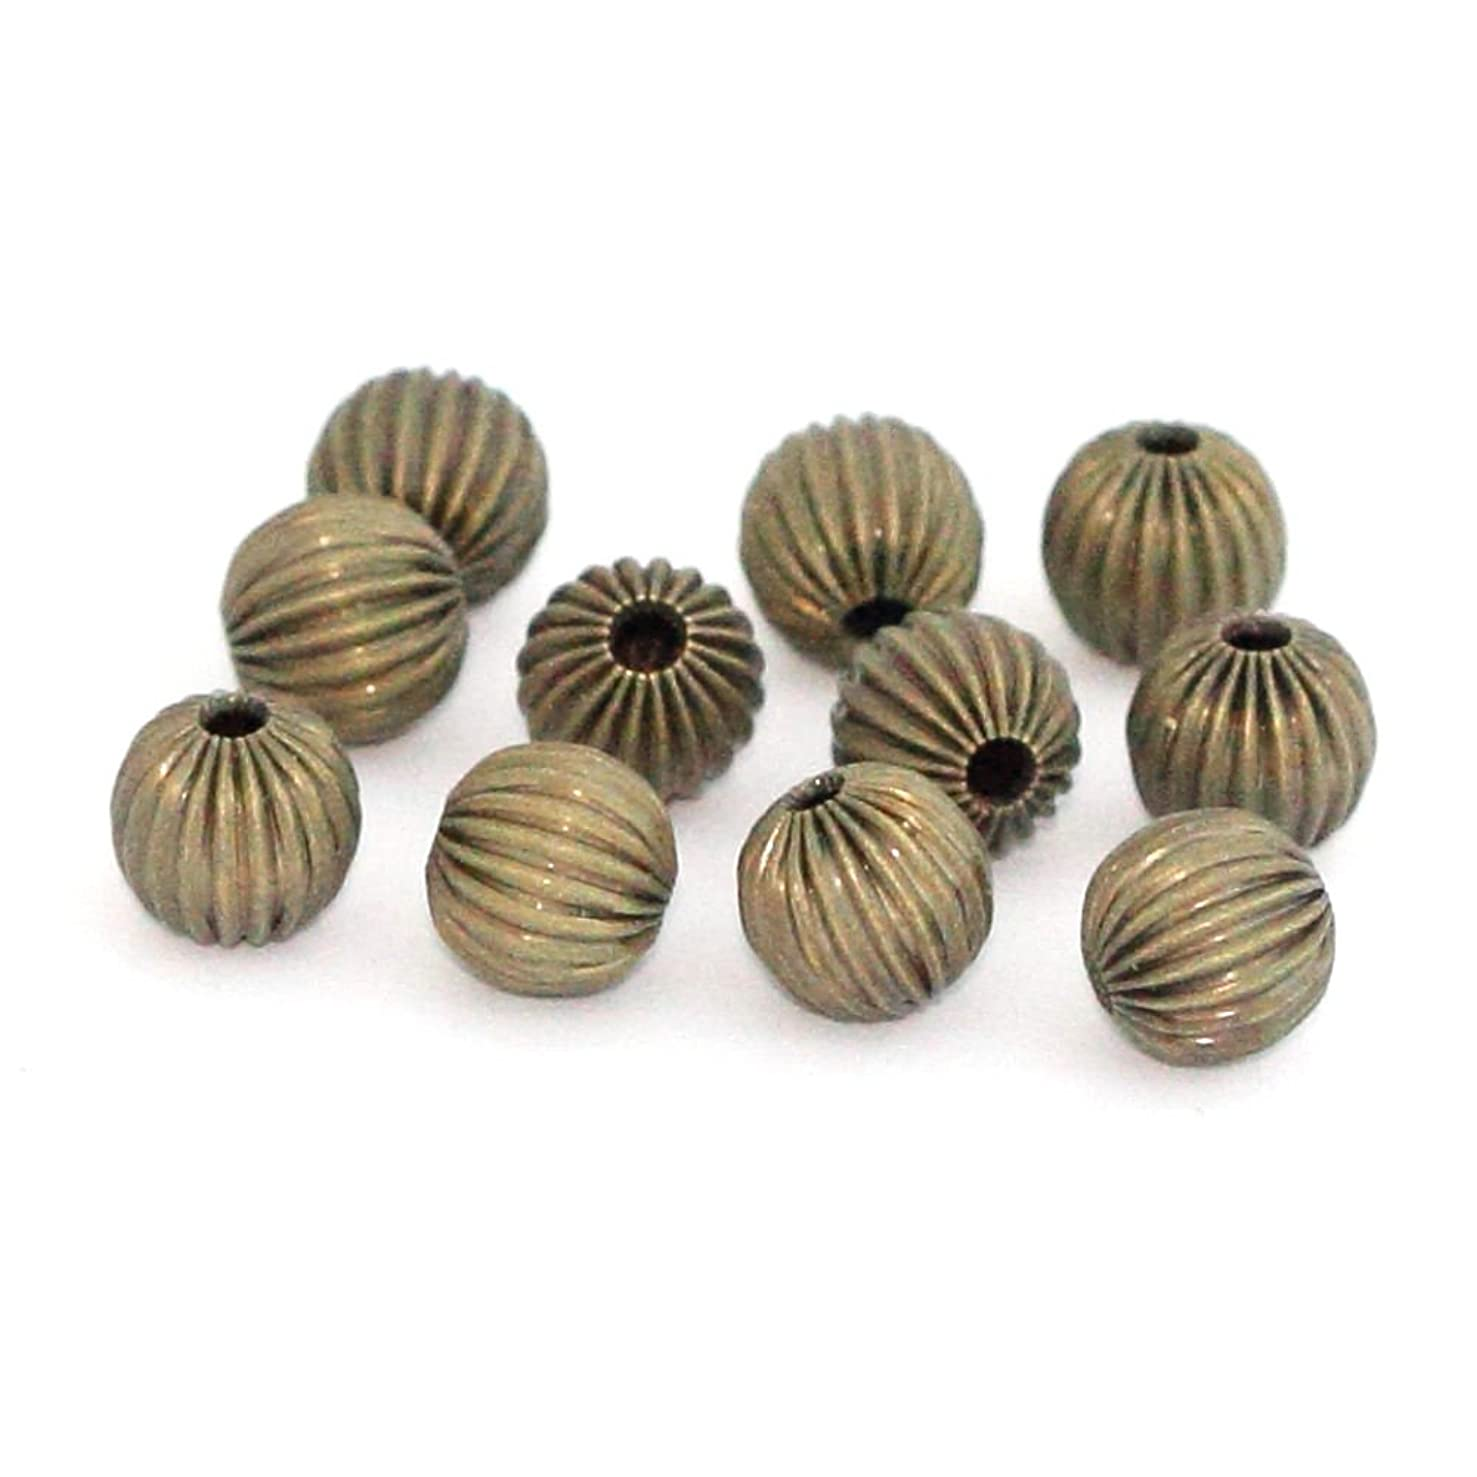 200pcs Beautiful Mellon Spacers 4mm Small Loose Round Metal Bead Antique Bronze Plated Brass for Jewelry Craft Making CF117-4 ktr7886593910